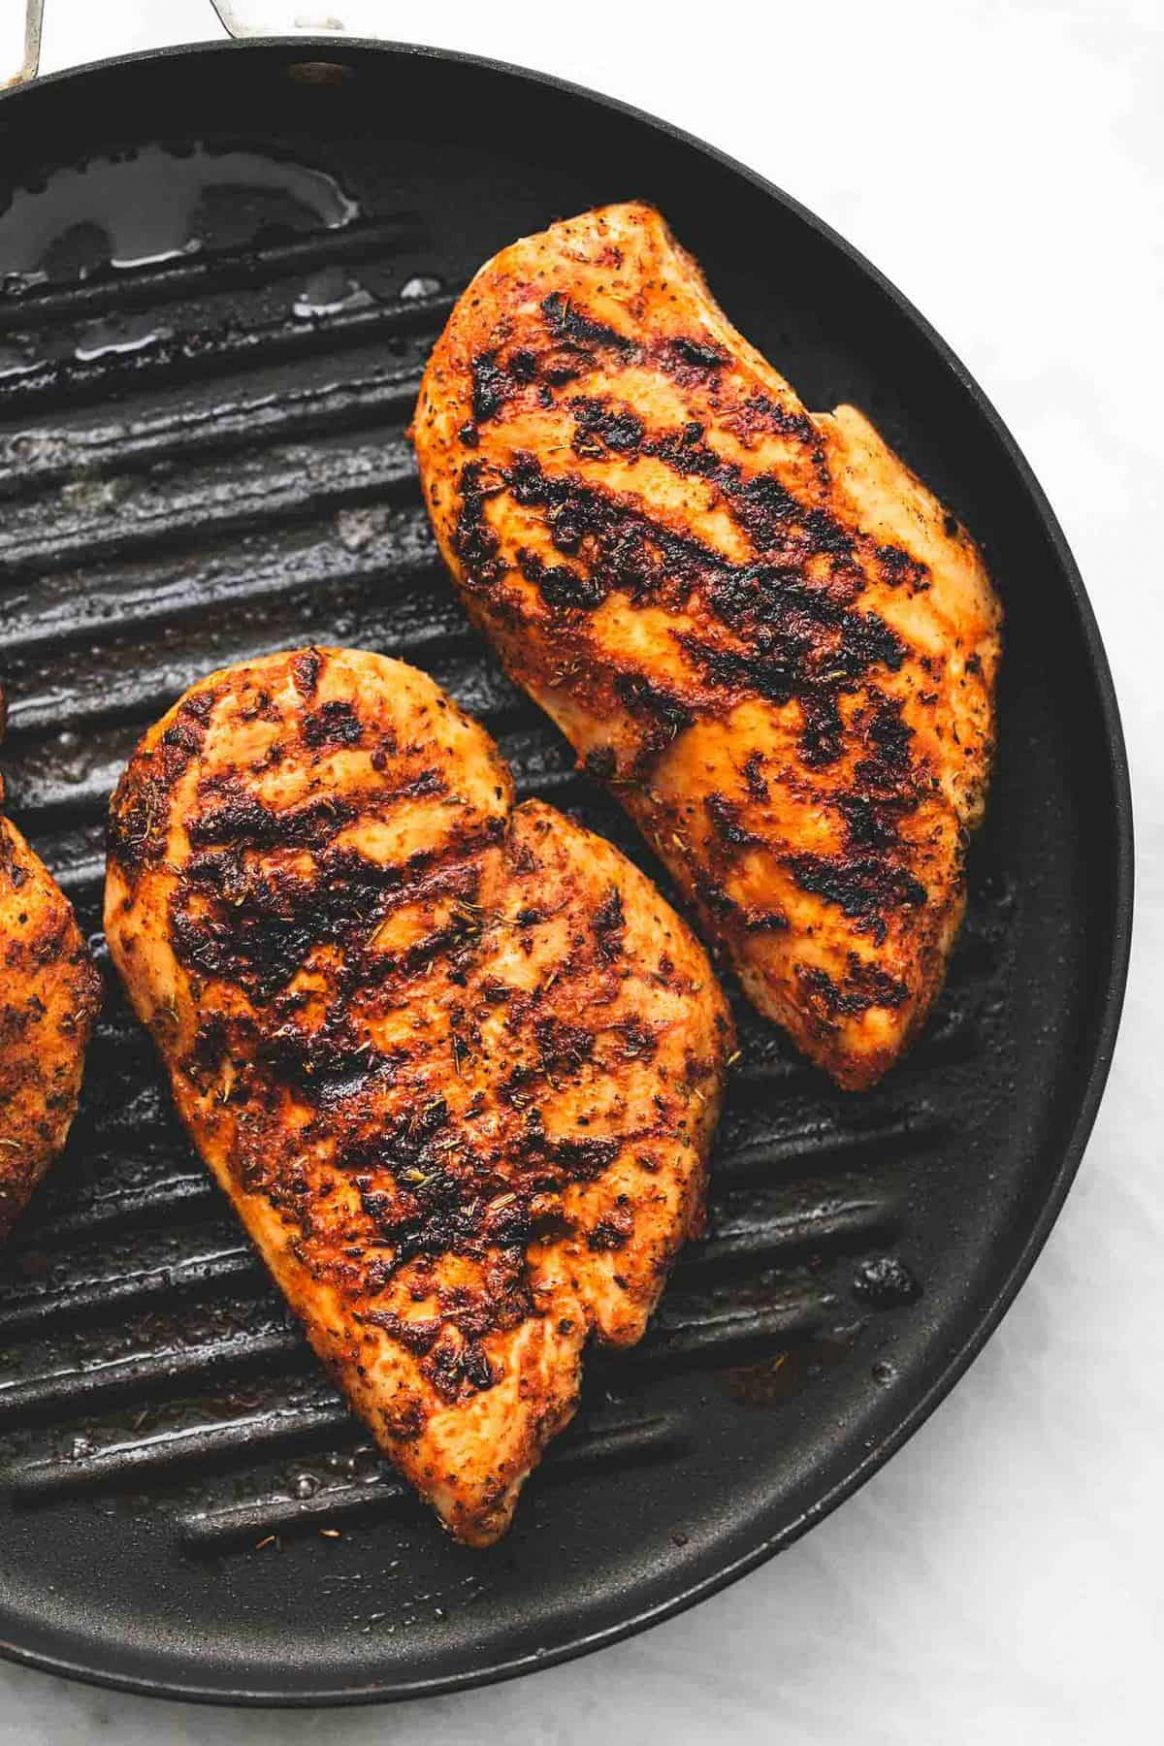 Grilled Chicken Rub